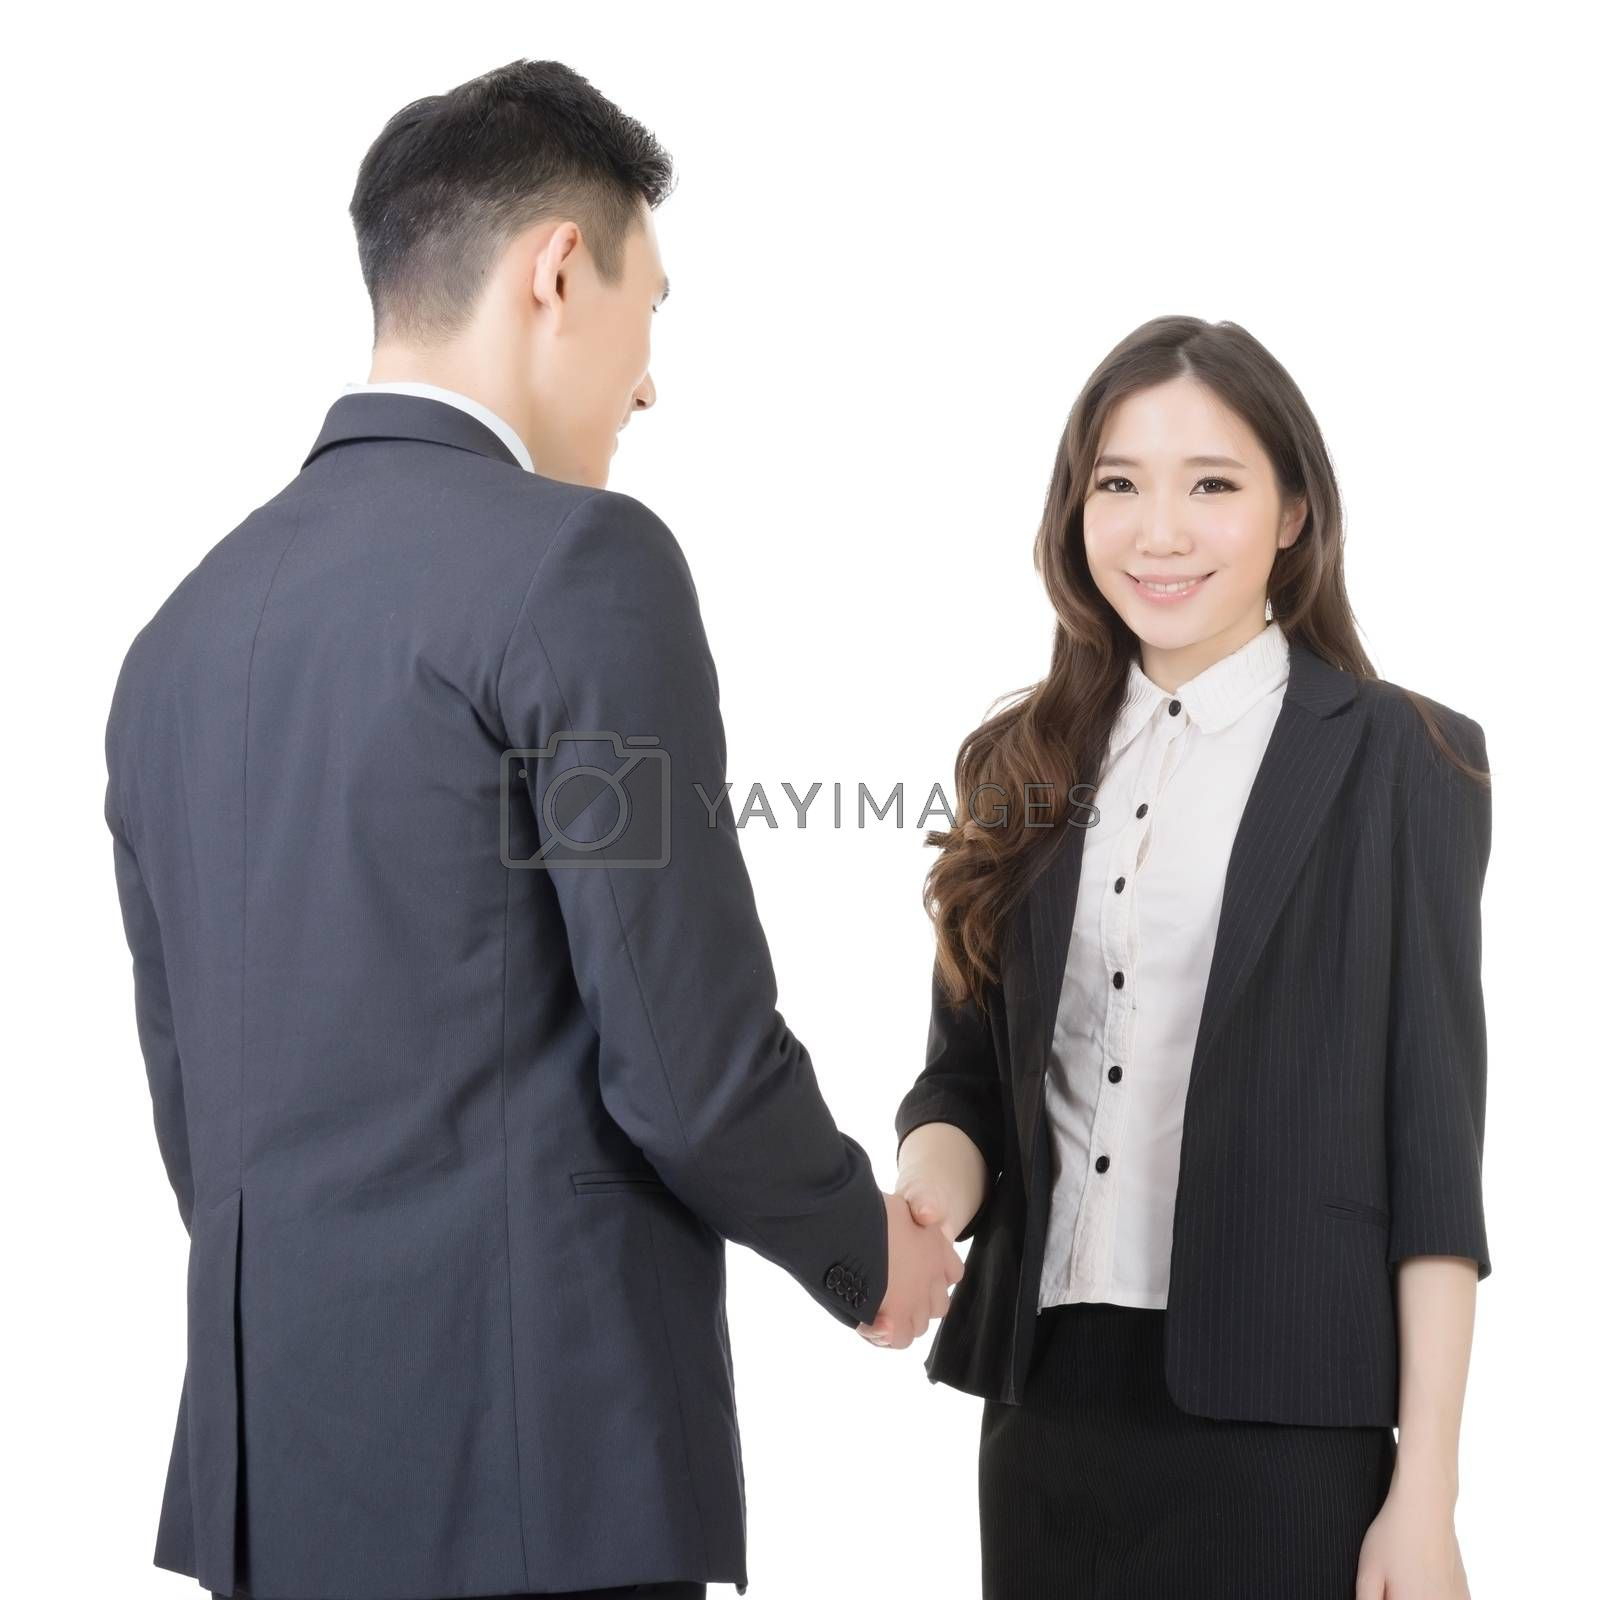 Royalty free image of Business woman and man shake hands by elwynn